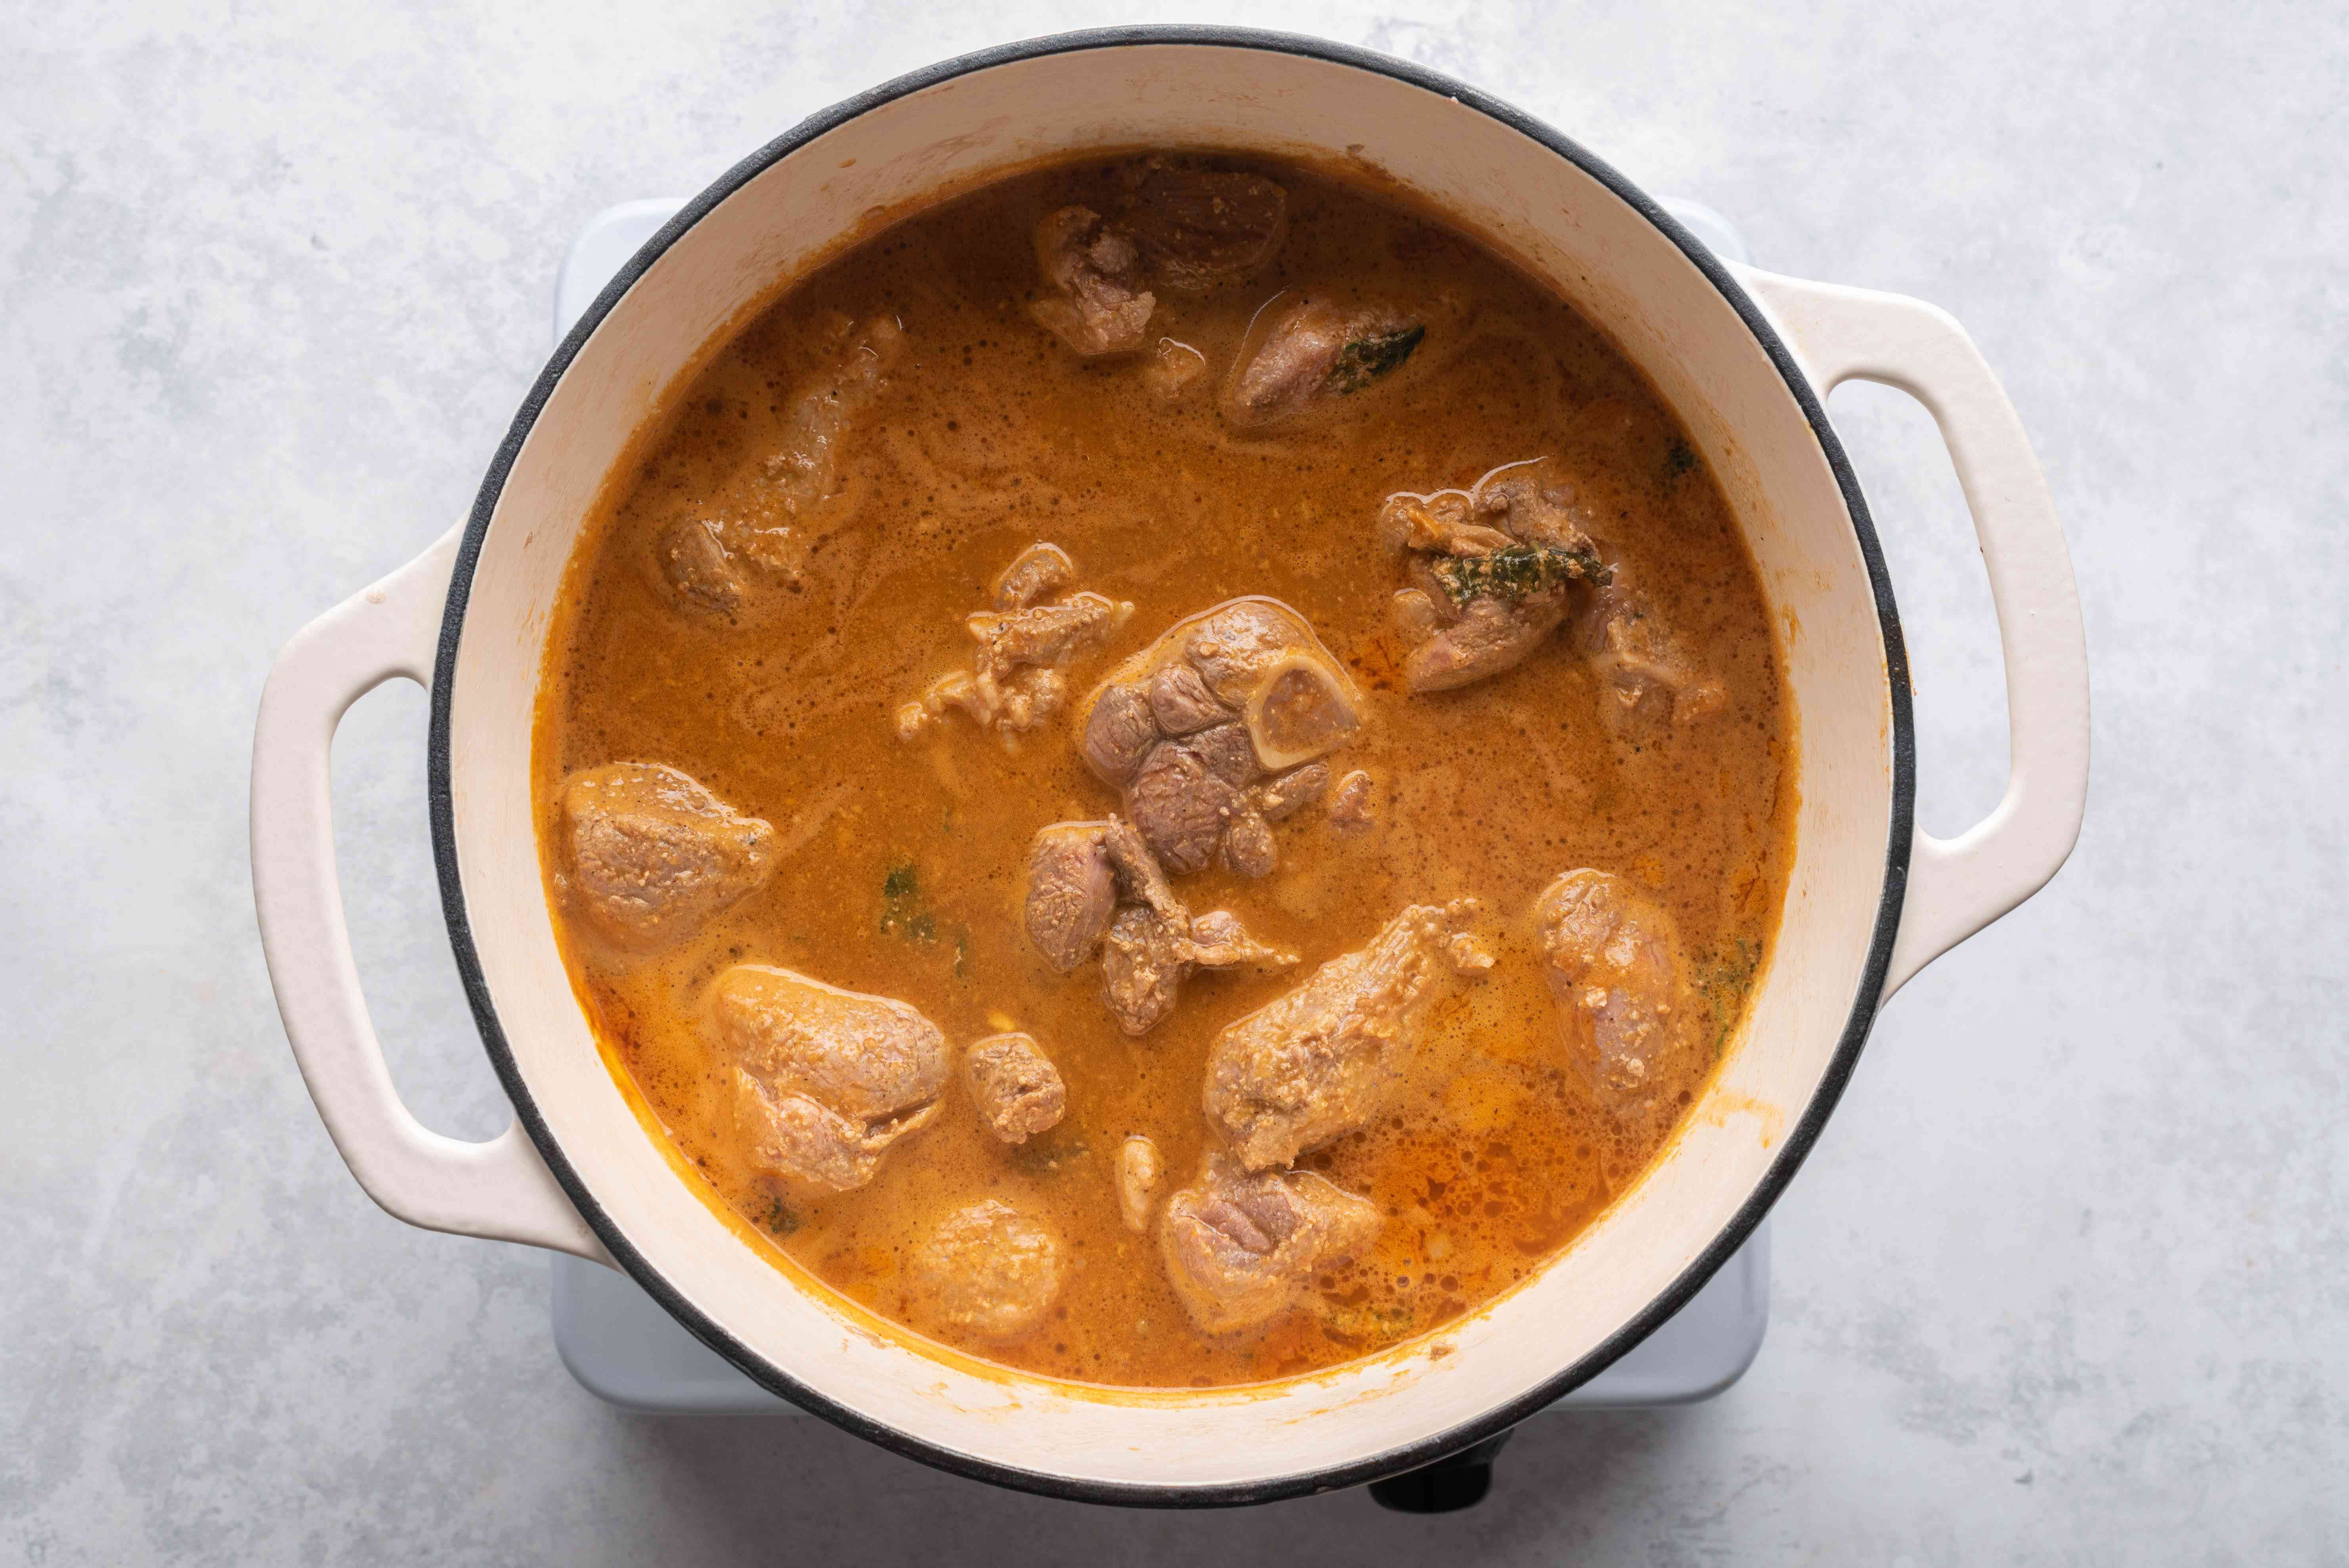 Pour the pureed sauce over the meat in the pot